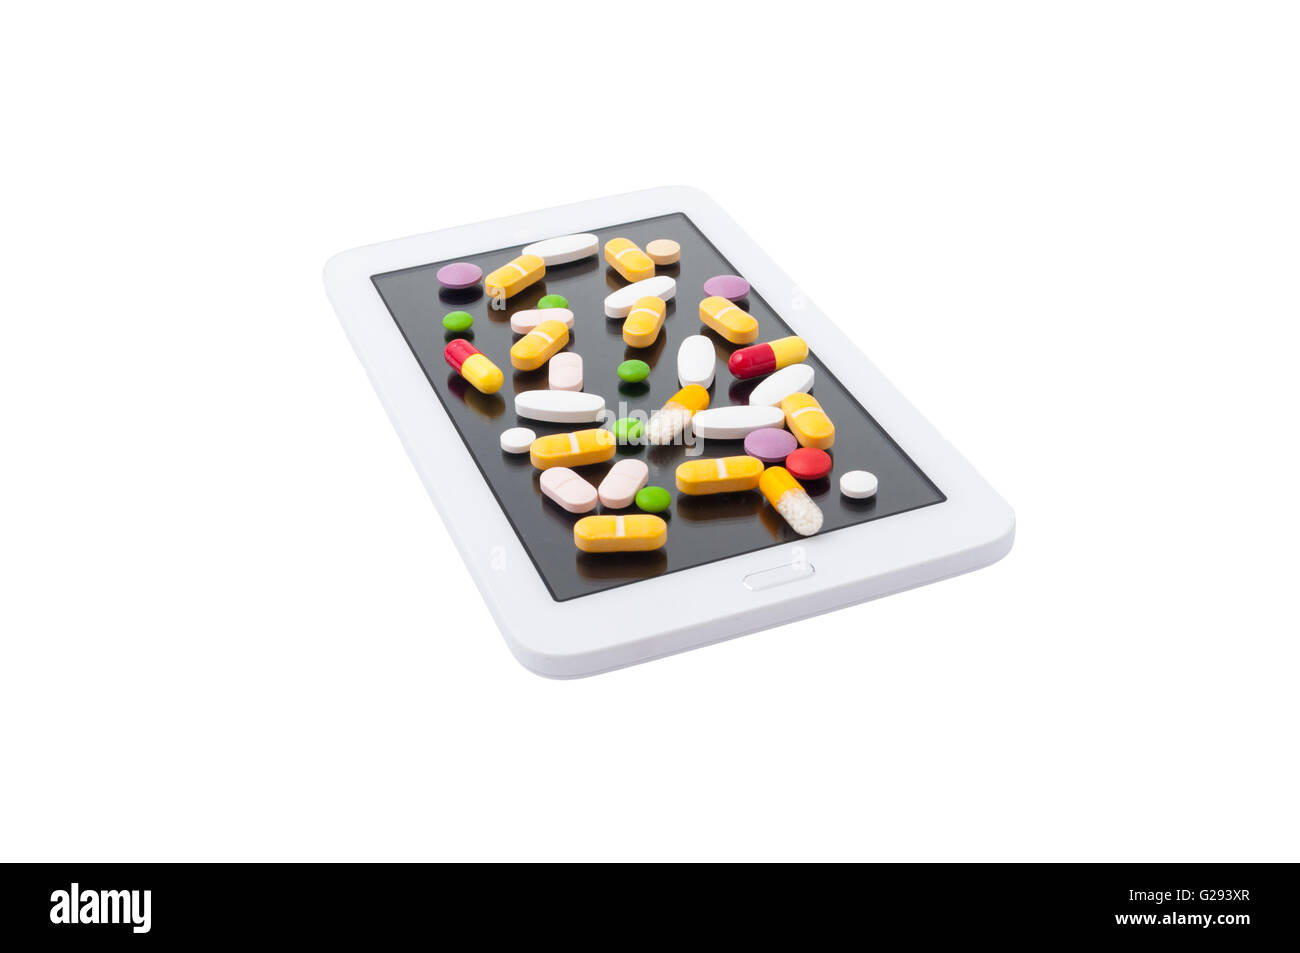 Bunch of colored pills on a touchscreen tablet isolated white background - Stock Image